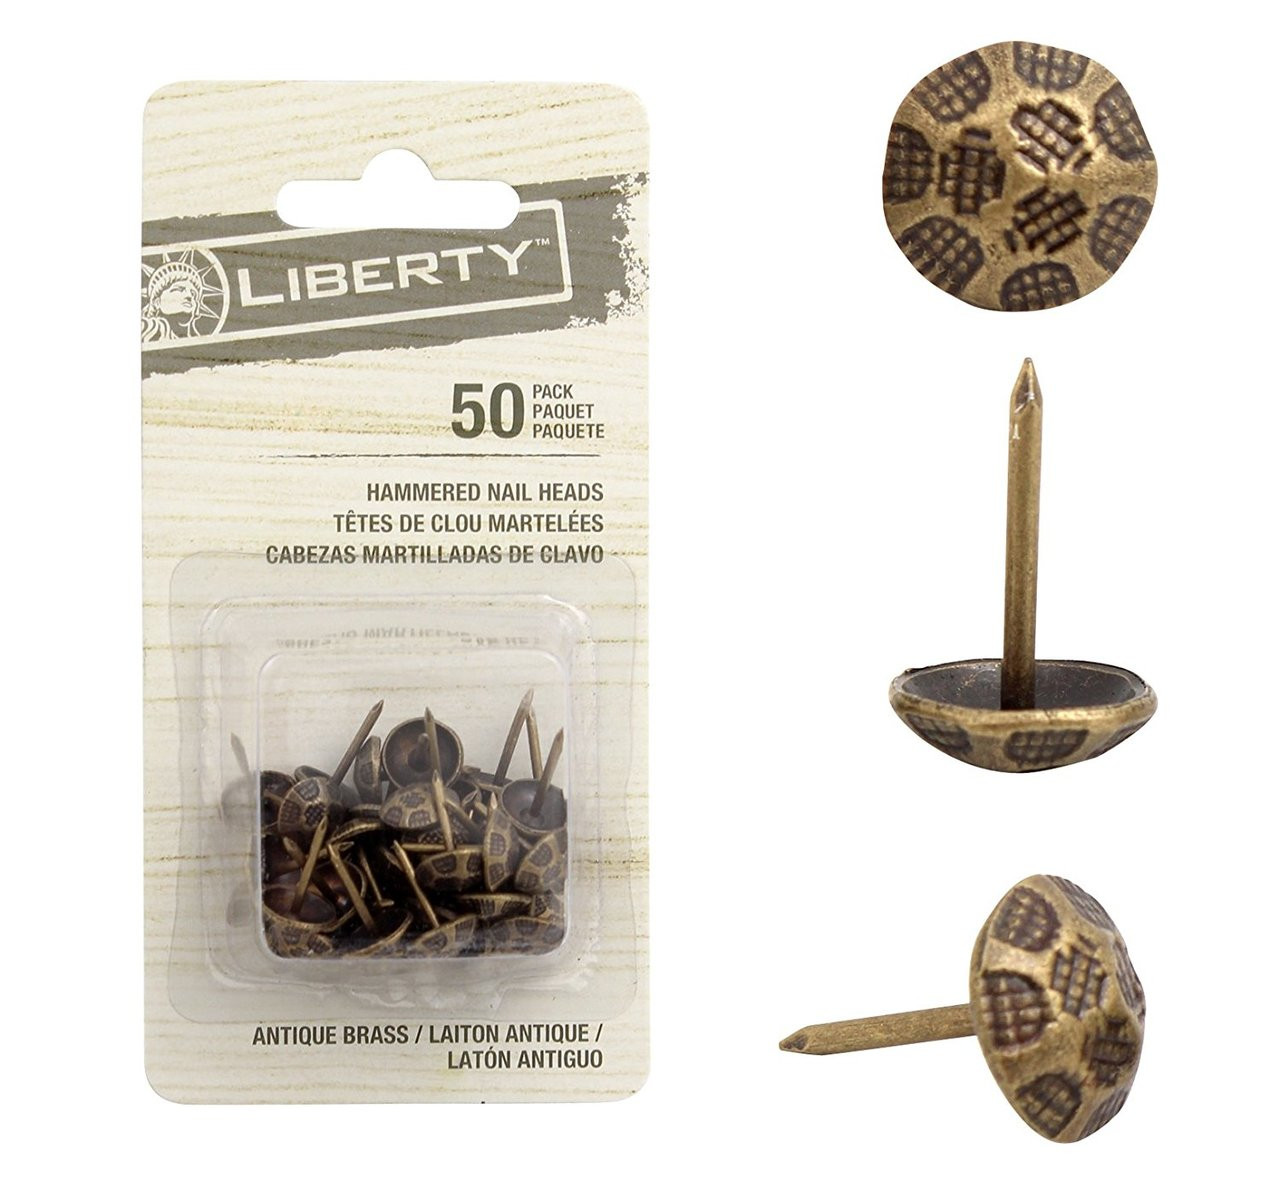 NHD005-AB Vintage Inspired Antique Brass Hammered Furniture Nailhead - 50 Pack